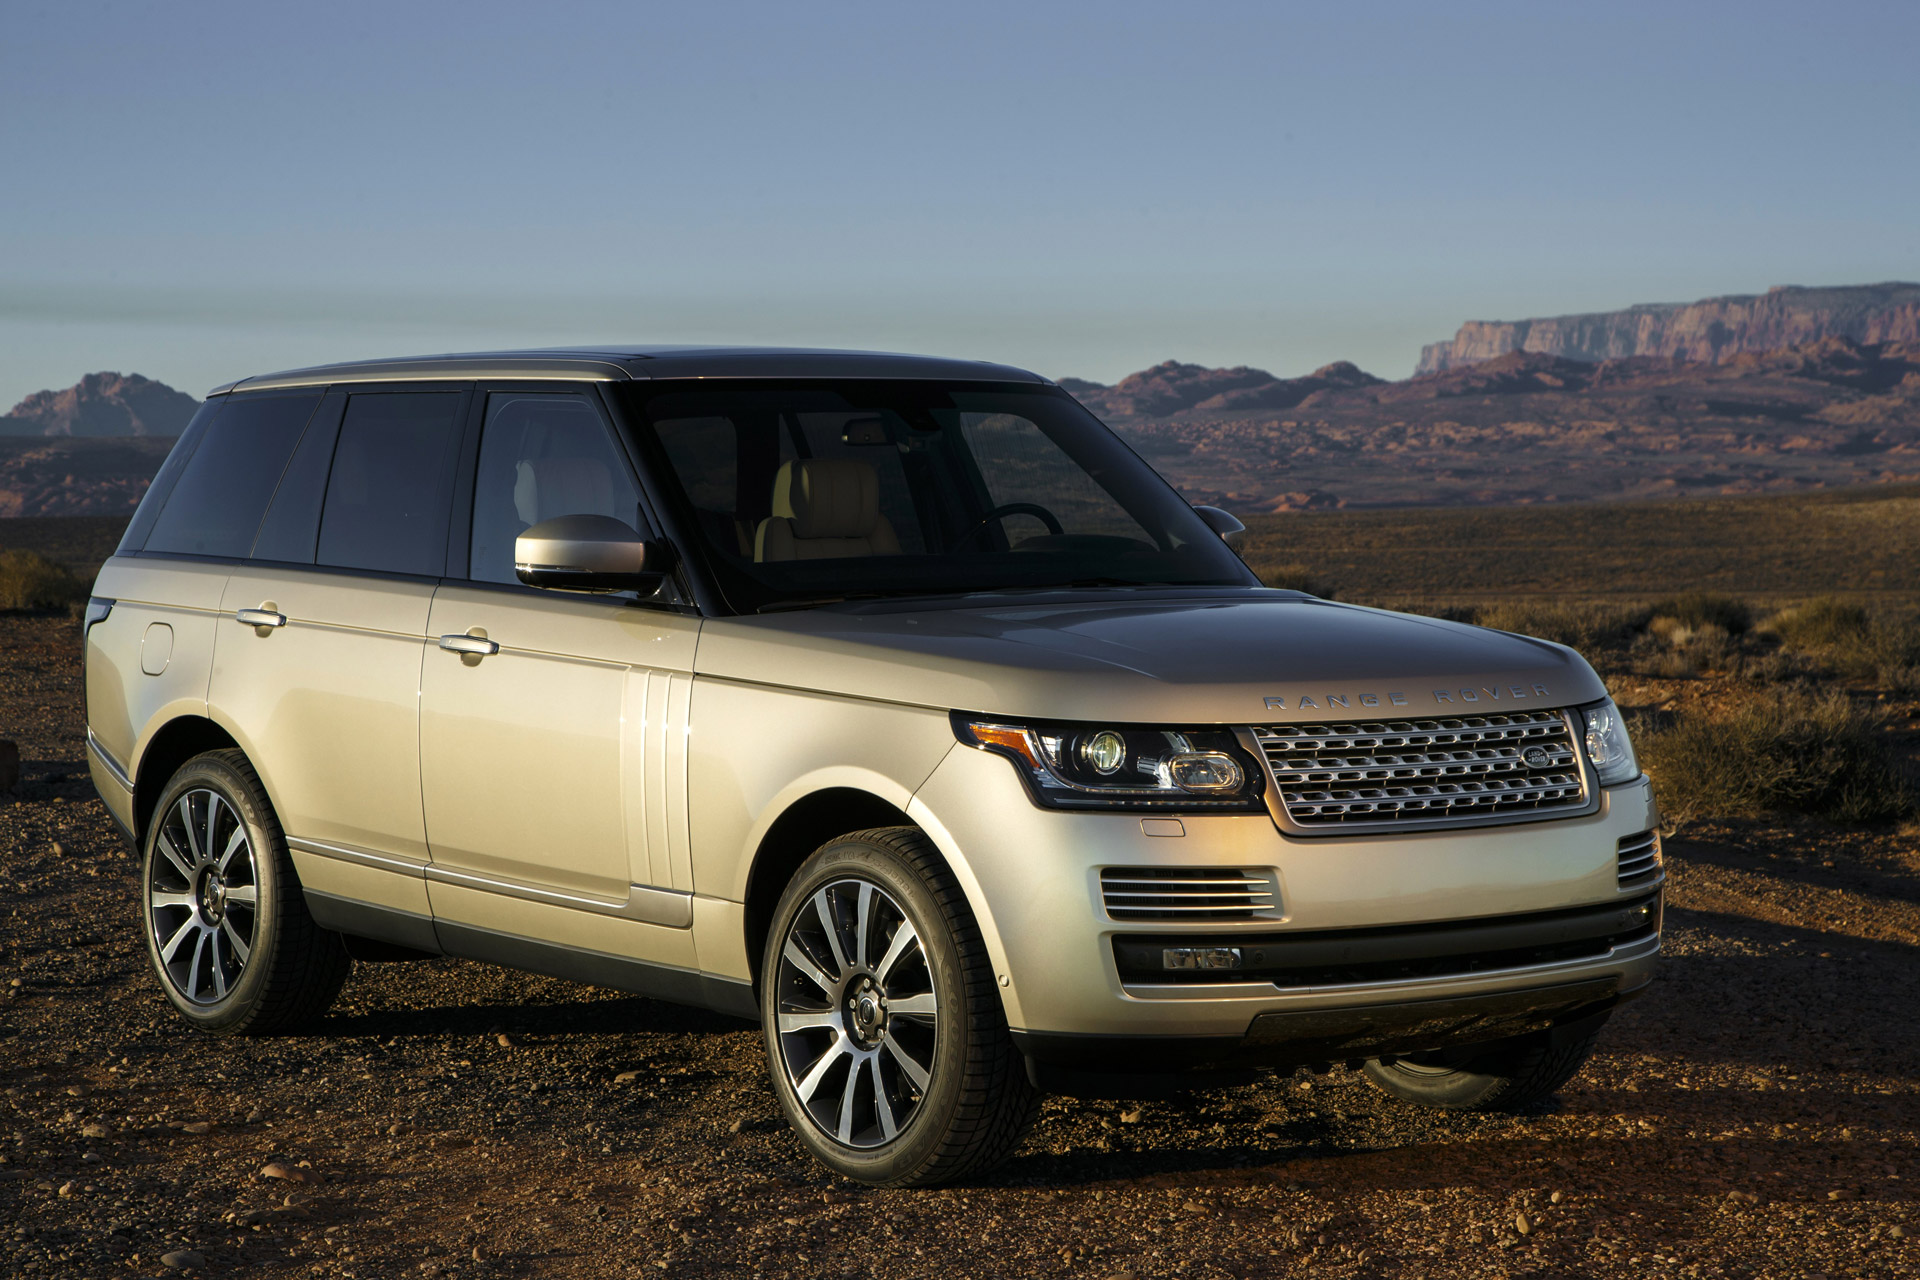 2015 Land Rover Range Rover Review Ratings Specs Prices And Photos The Car Connection